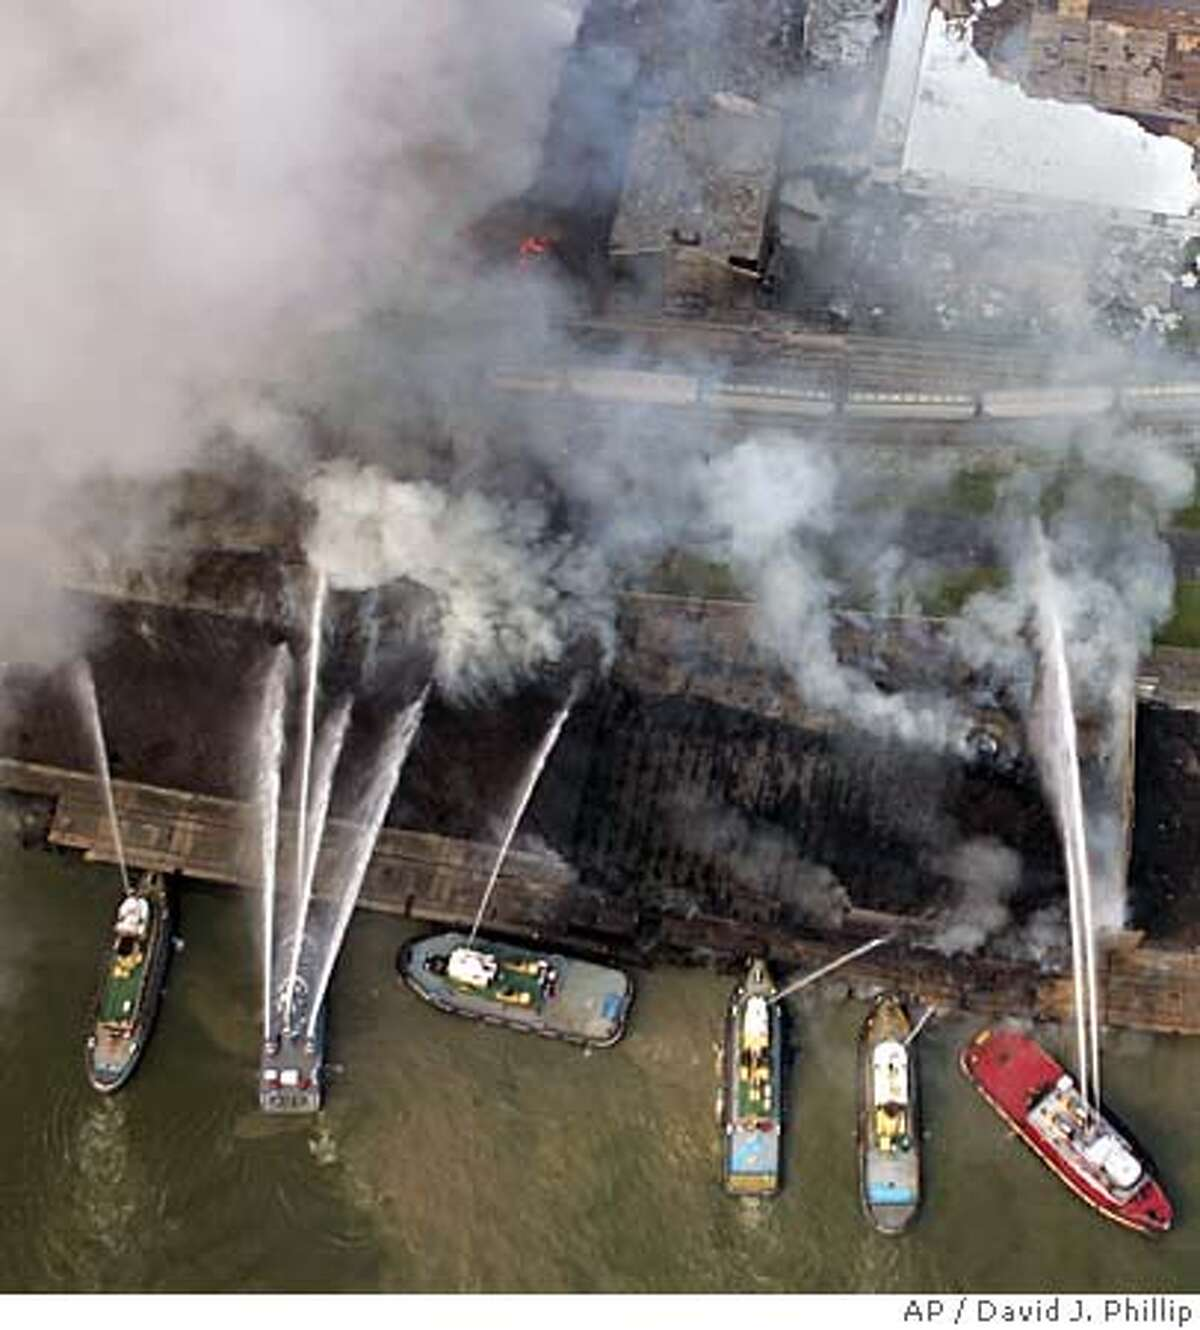 Water is sprayed on an industrial fire near downtown New Orleans Friday, Sept. 2, 2005. (AP Photo/David J. Phillip)